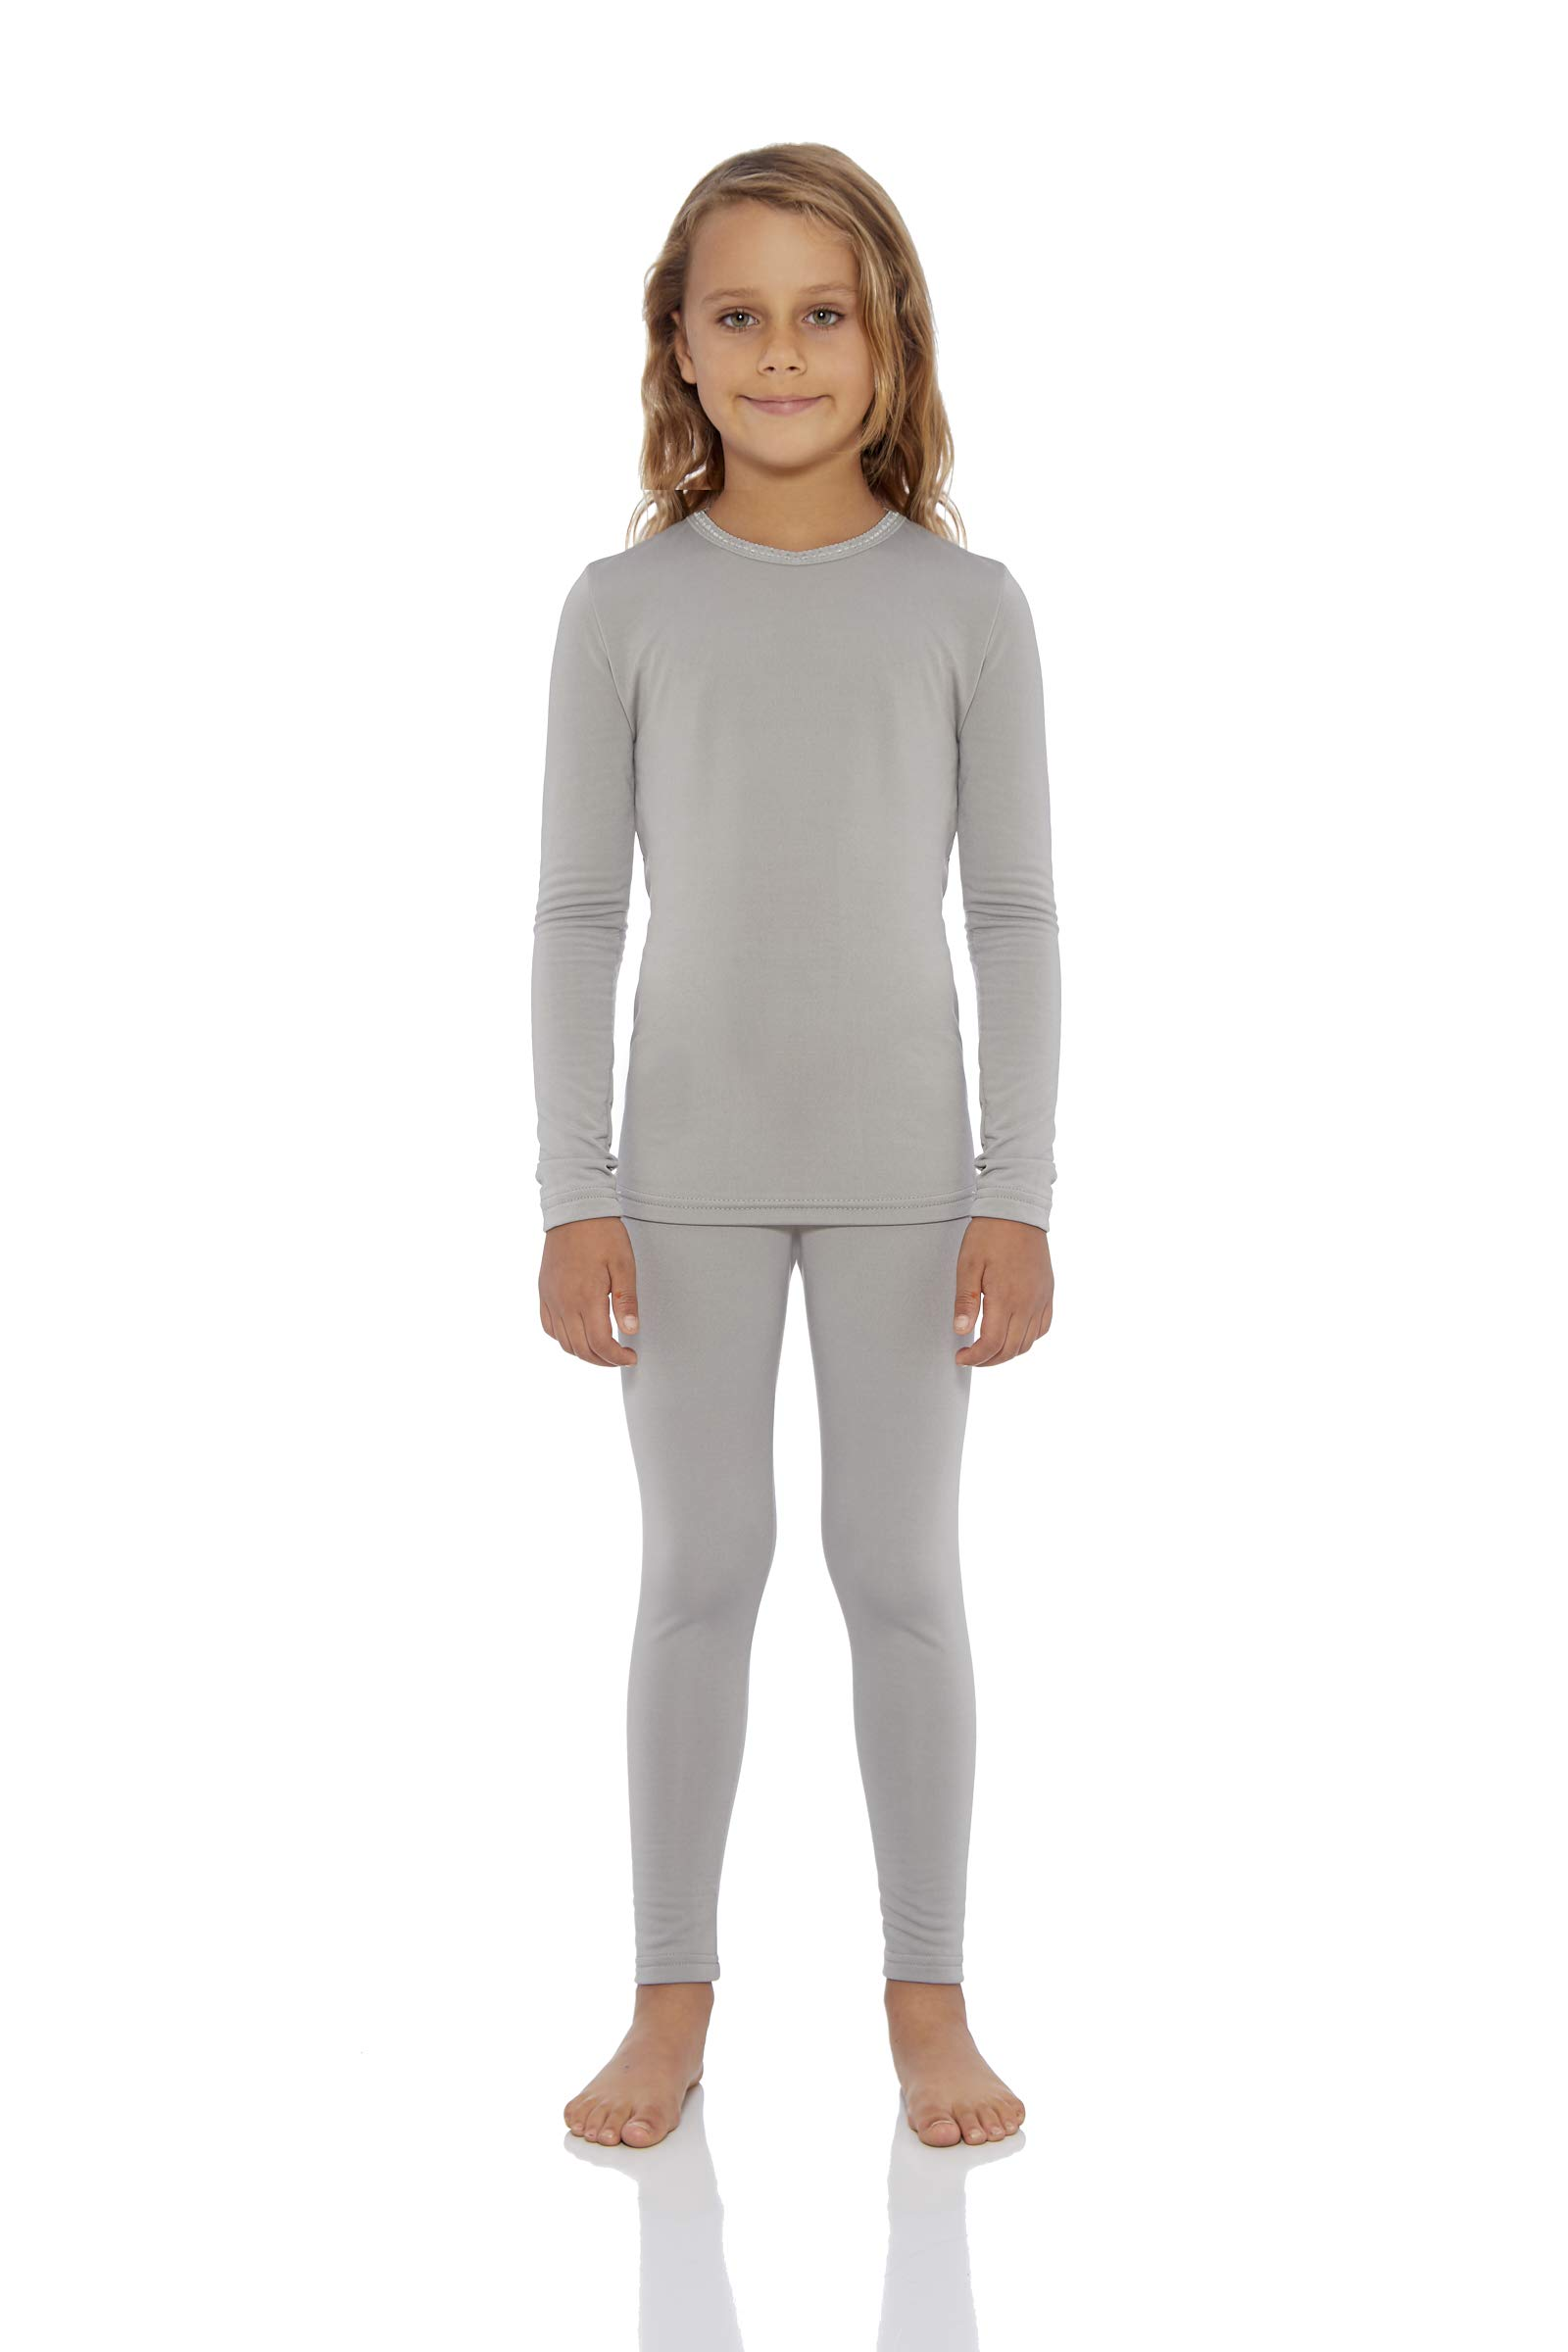 Rocky Girl's Smooth Knit Thermal Underwear 2PC Set Long John Top and Bottom Pajamas (Grey, XXS) by Rocky